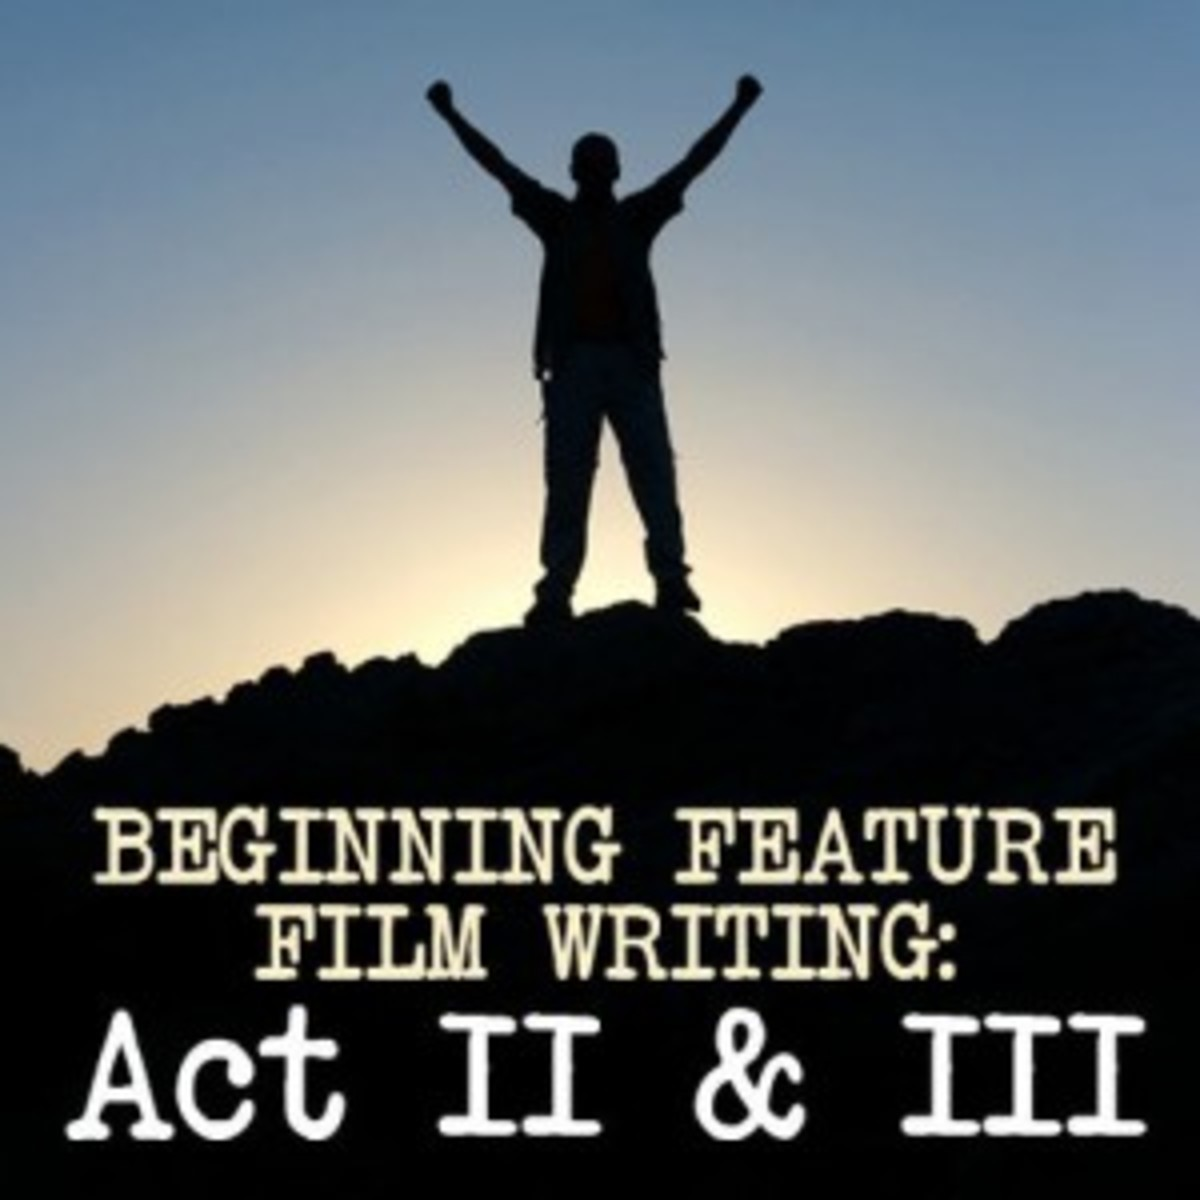 Beginning Feature Film Writing: Act II & III